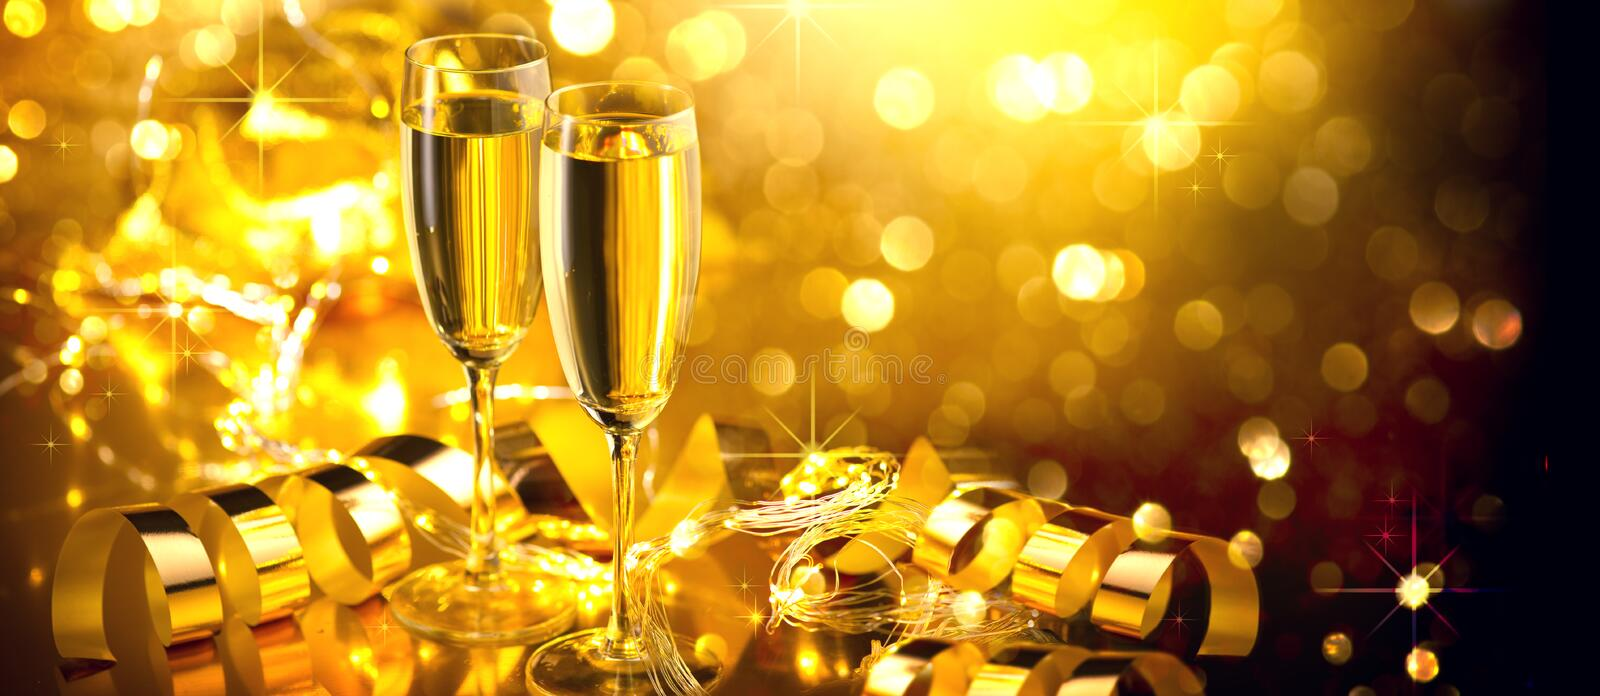 Holiday Champagne Flute over Golden glow background. Christmas and New Year celebration. Two Flutes with Sparkling Wine. Over Holiday Bokeh Blinking Background stock photos